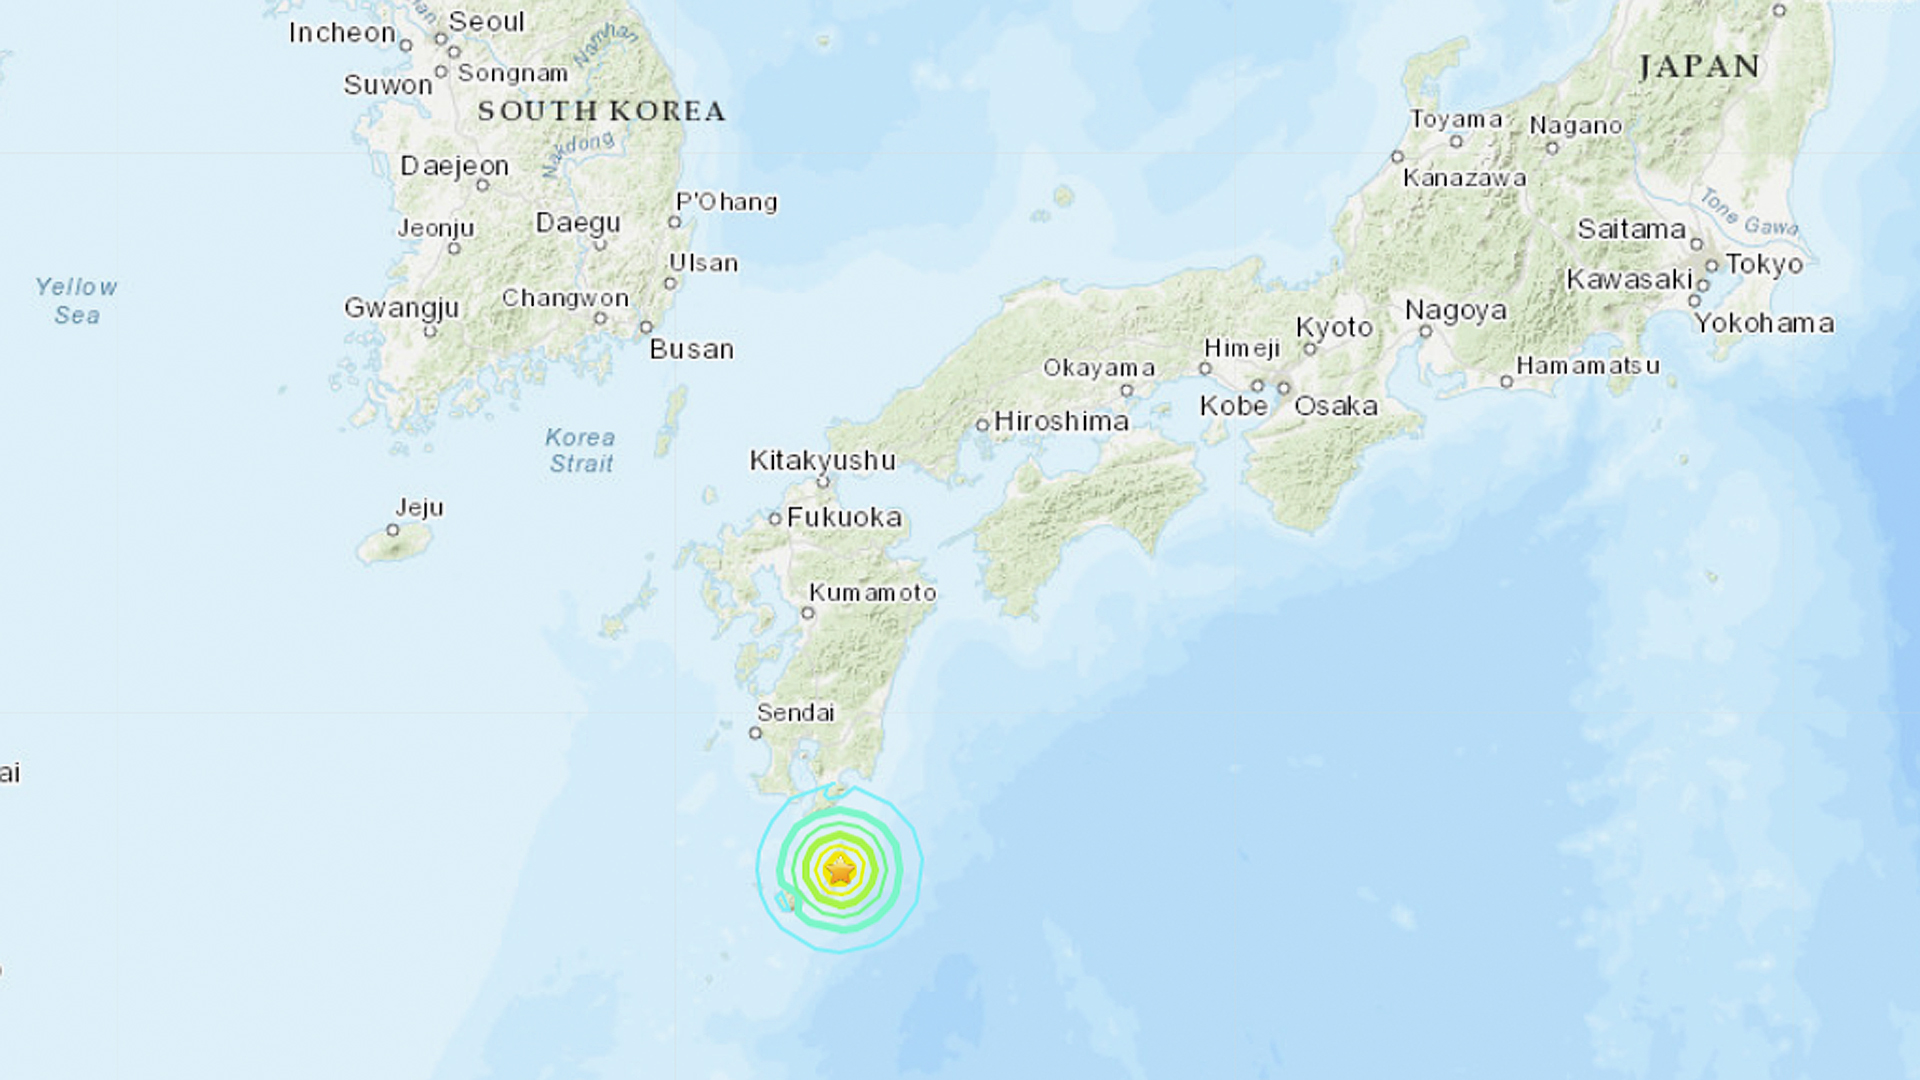 The U.S. Geological Survey said the quake struck near southern Japan Tuesday evening and had a preliminary magnitude of 6.3. (Credit: U.S.G.S.)